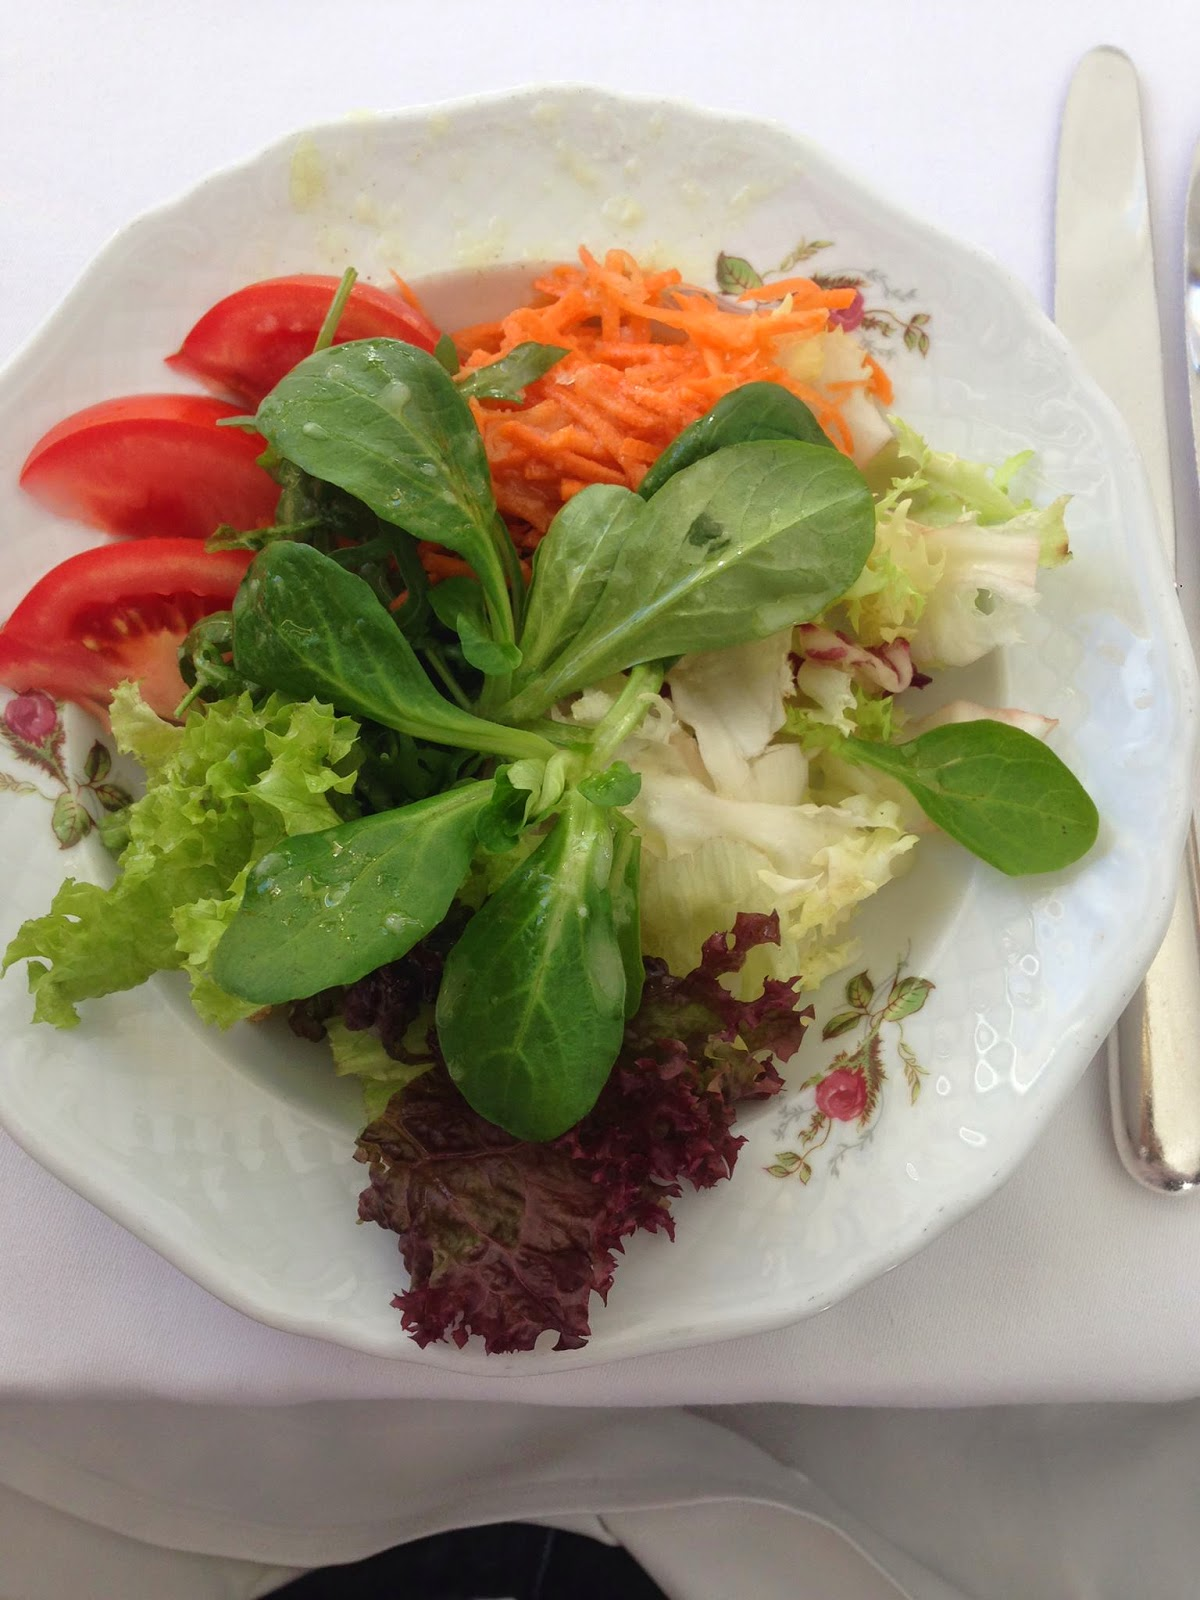 Tasty salad at Waldhaus am See near Lake St.Moritz